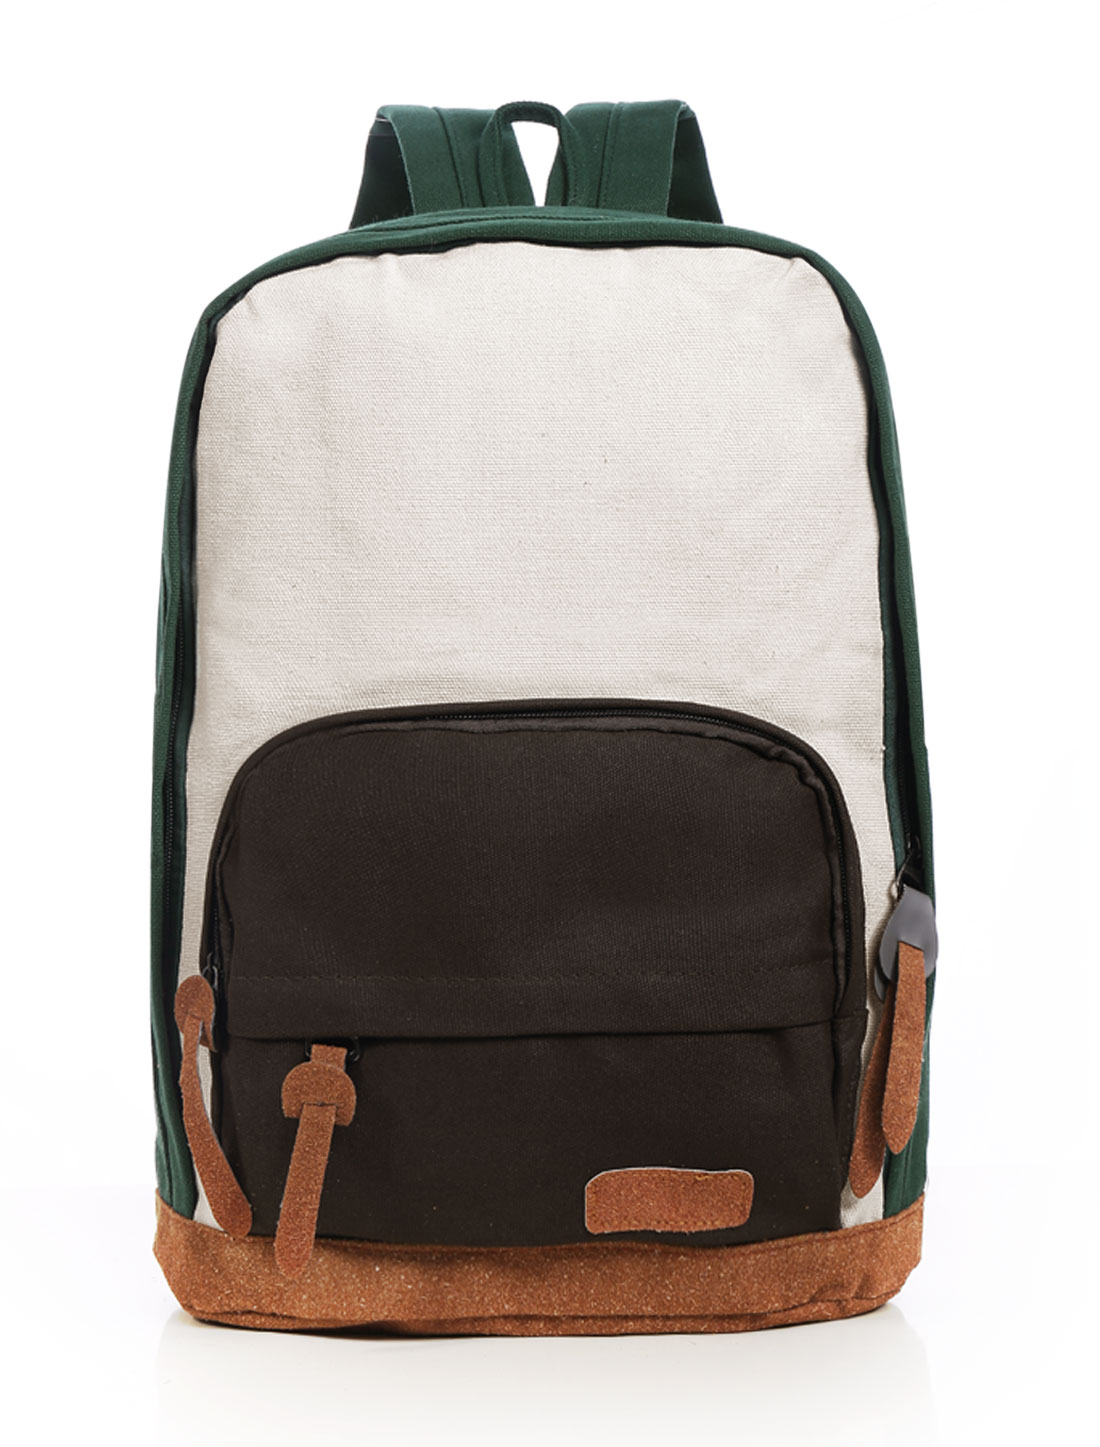 Men Color Block Front Pockets Casual Backpack Green Off White